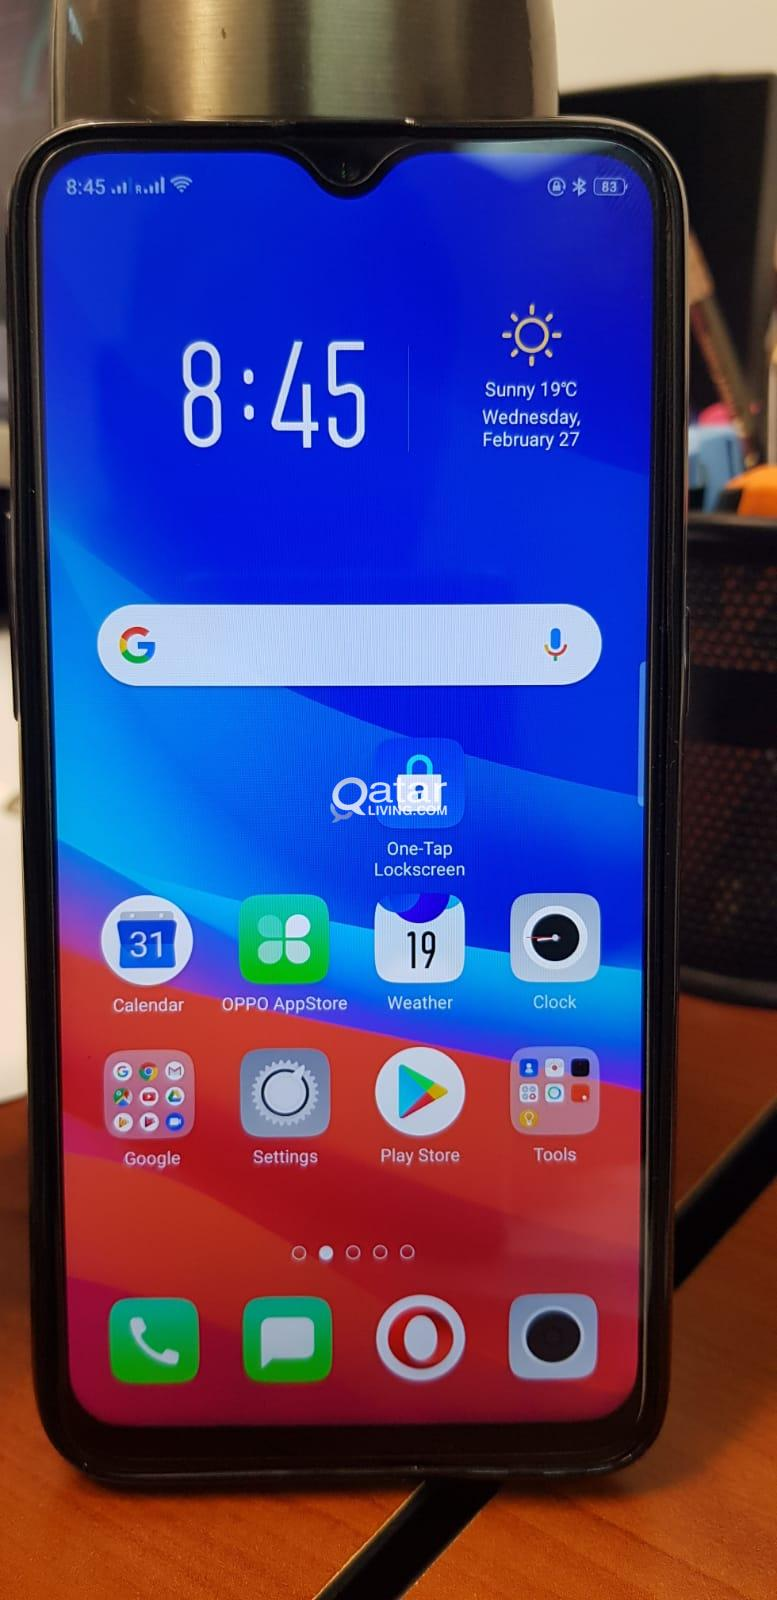 Oppo F9 For Sale | Qatar Living